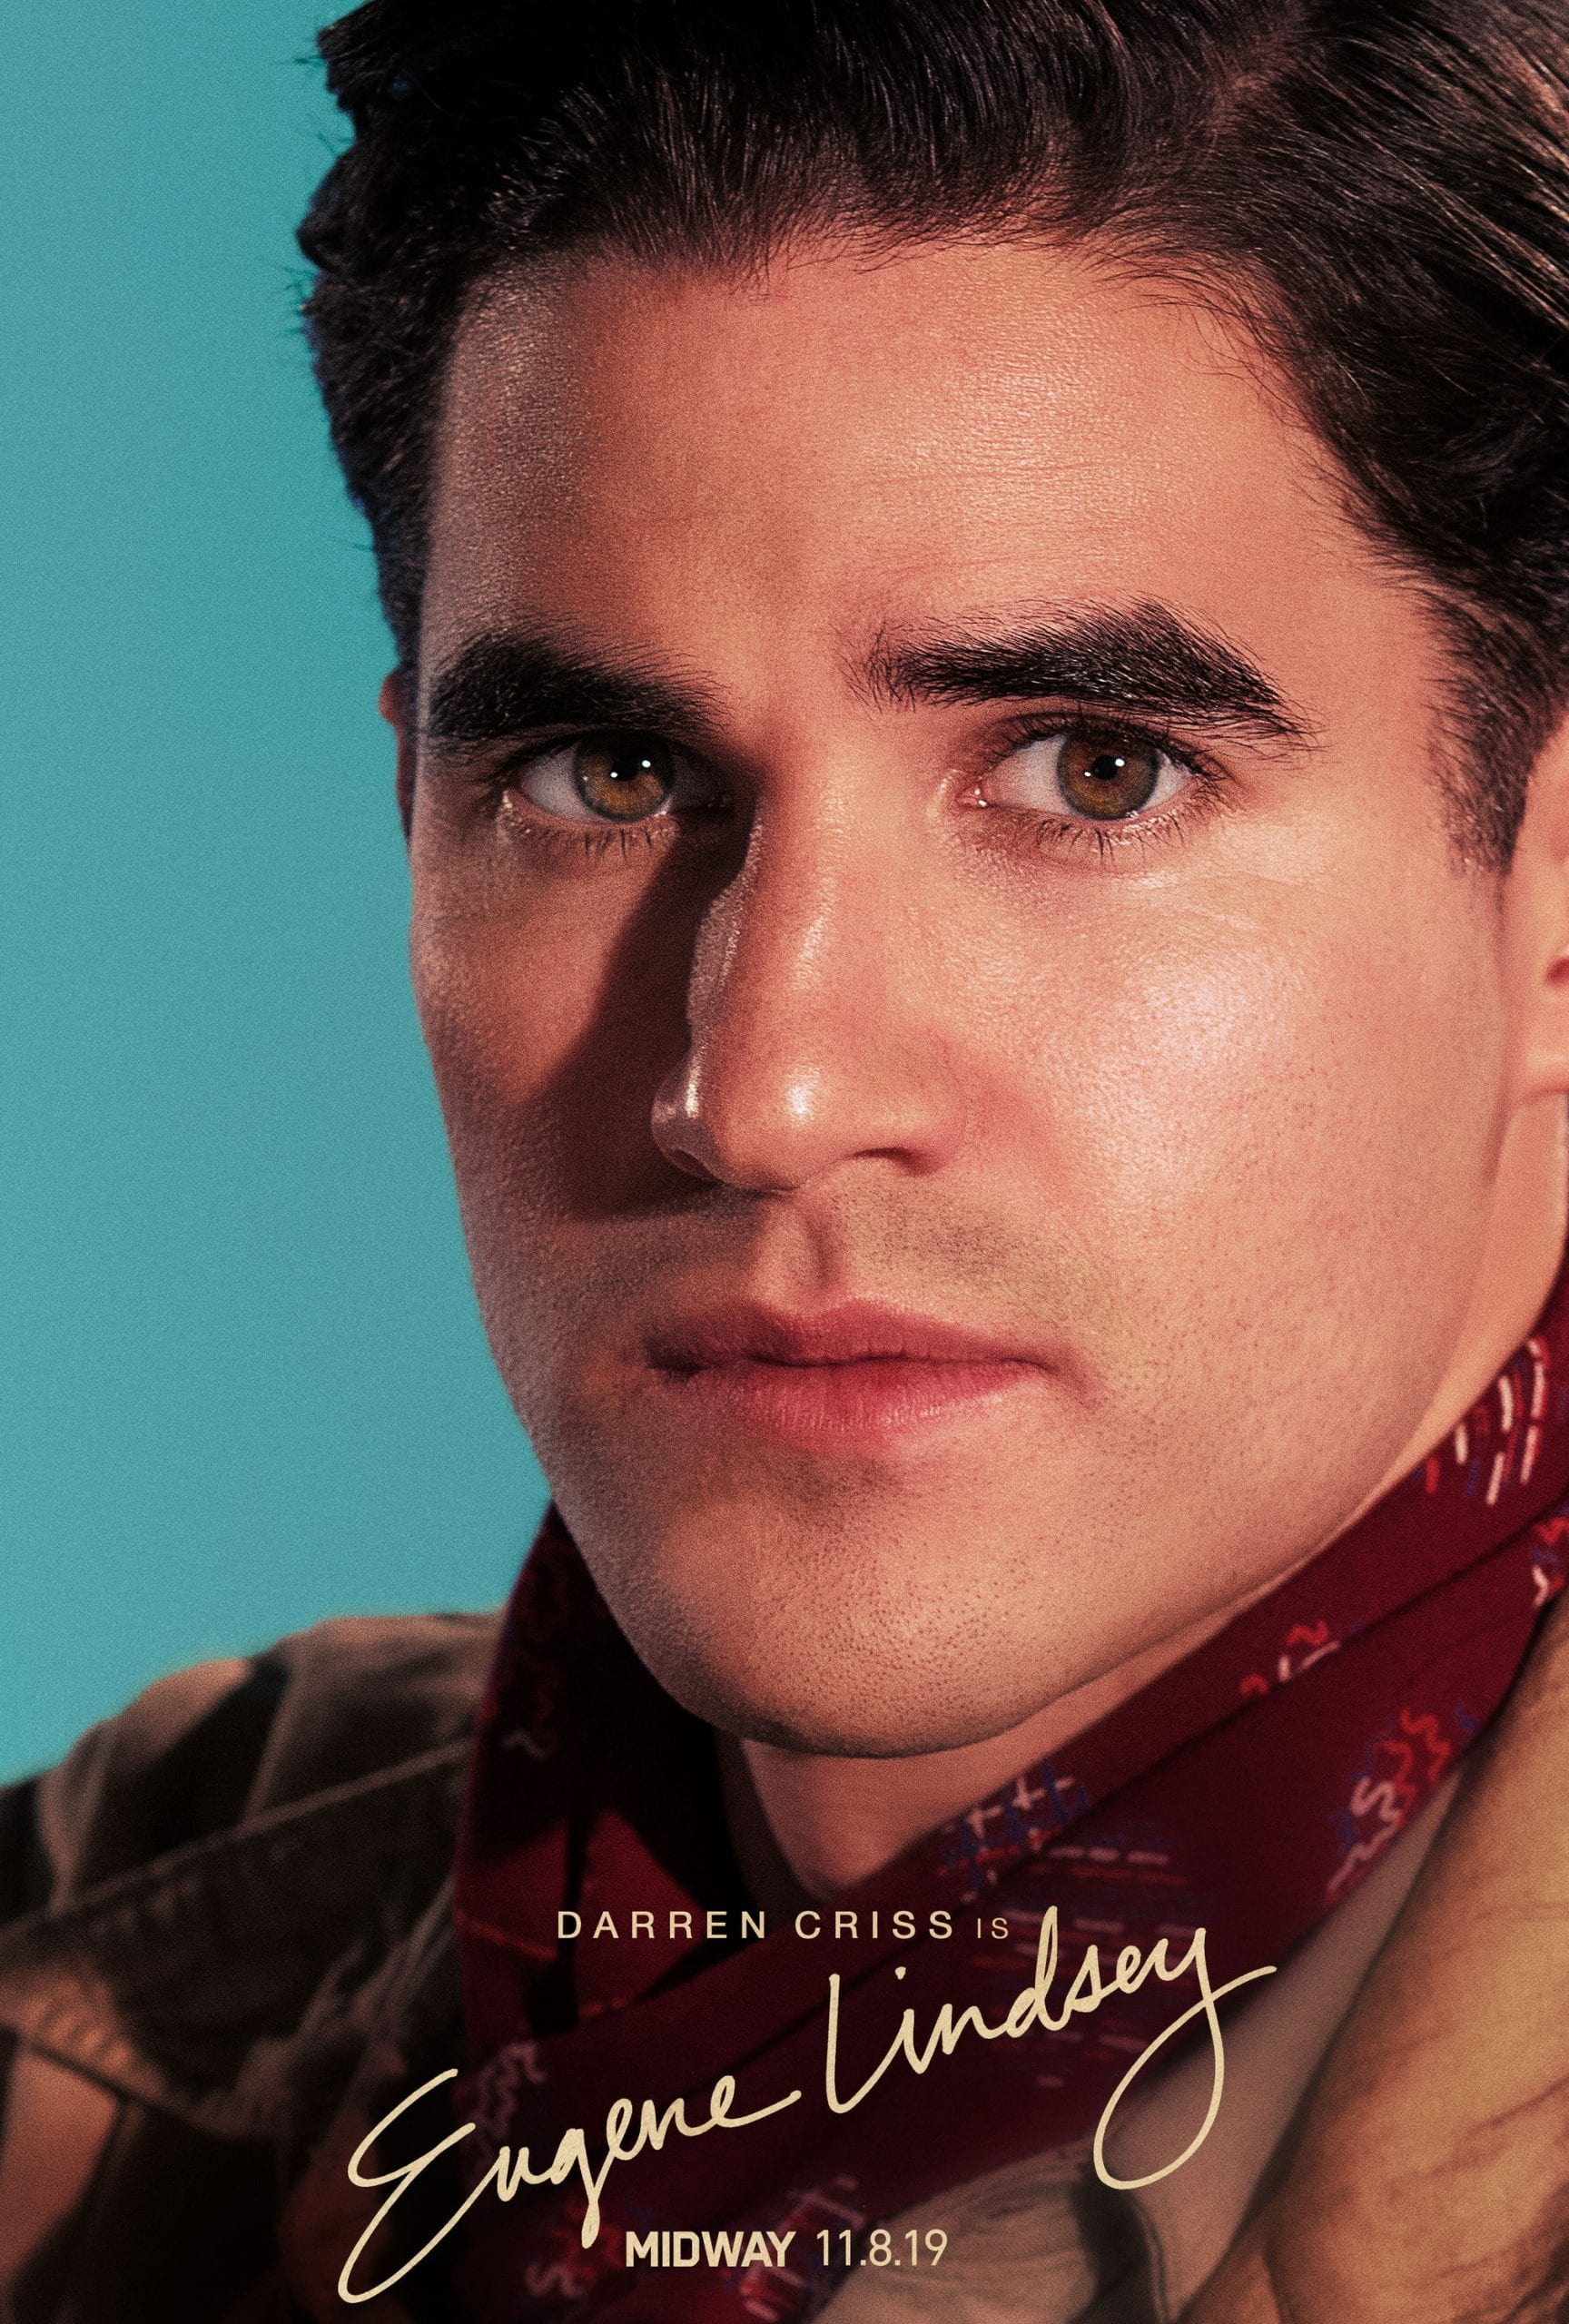 Midway Character Posters Darren Criss as Eugene Lindsey